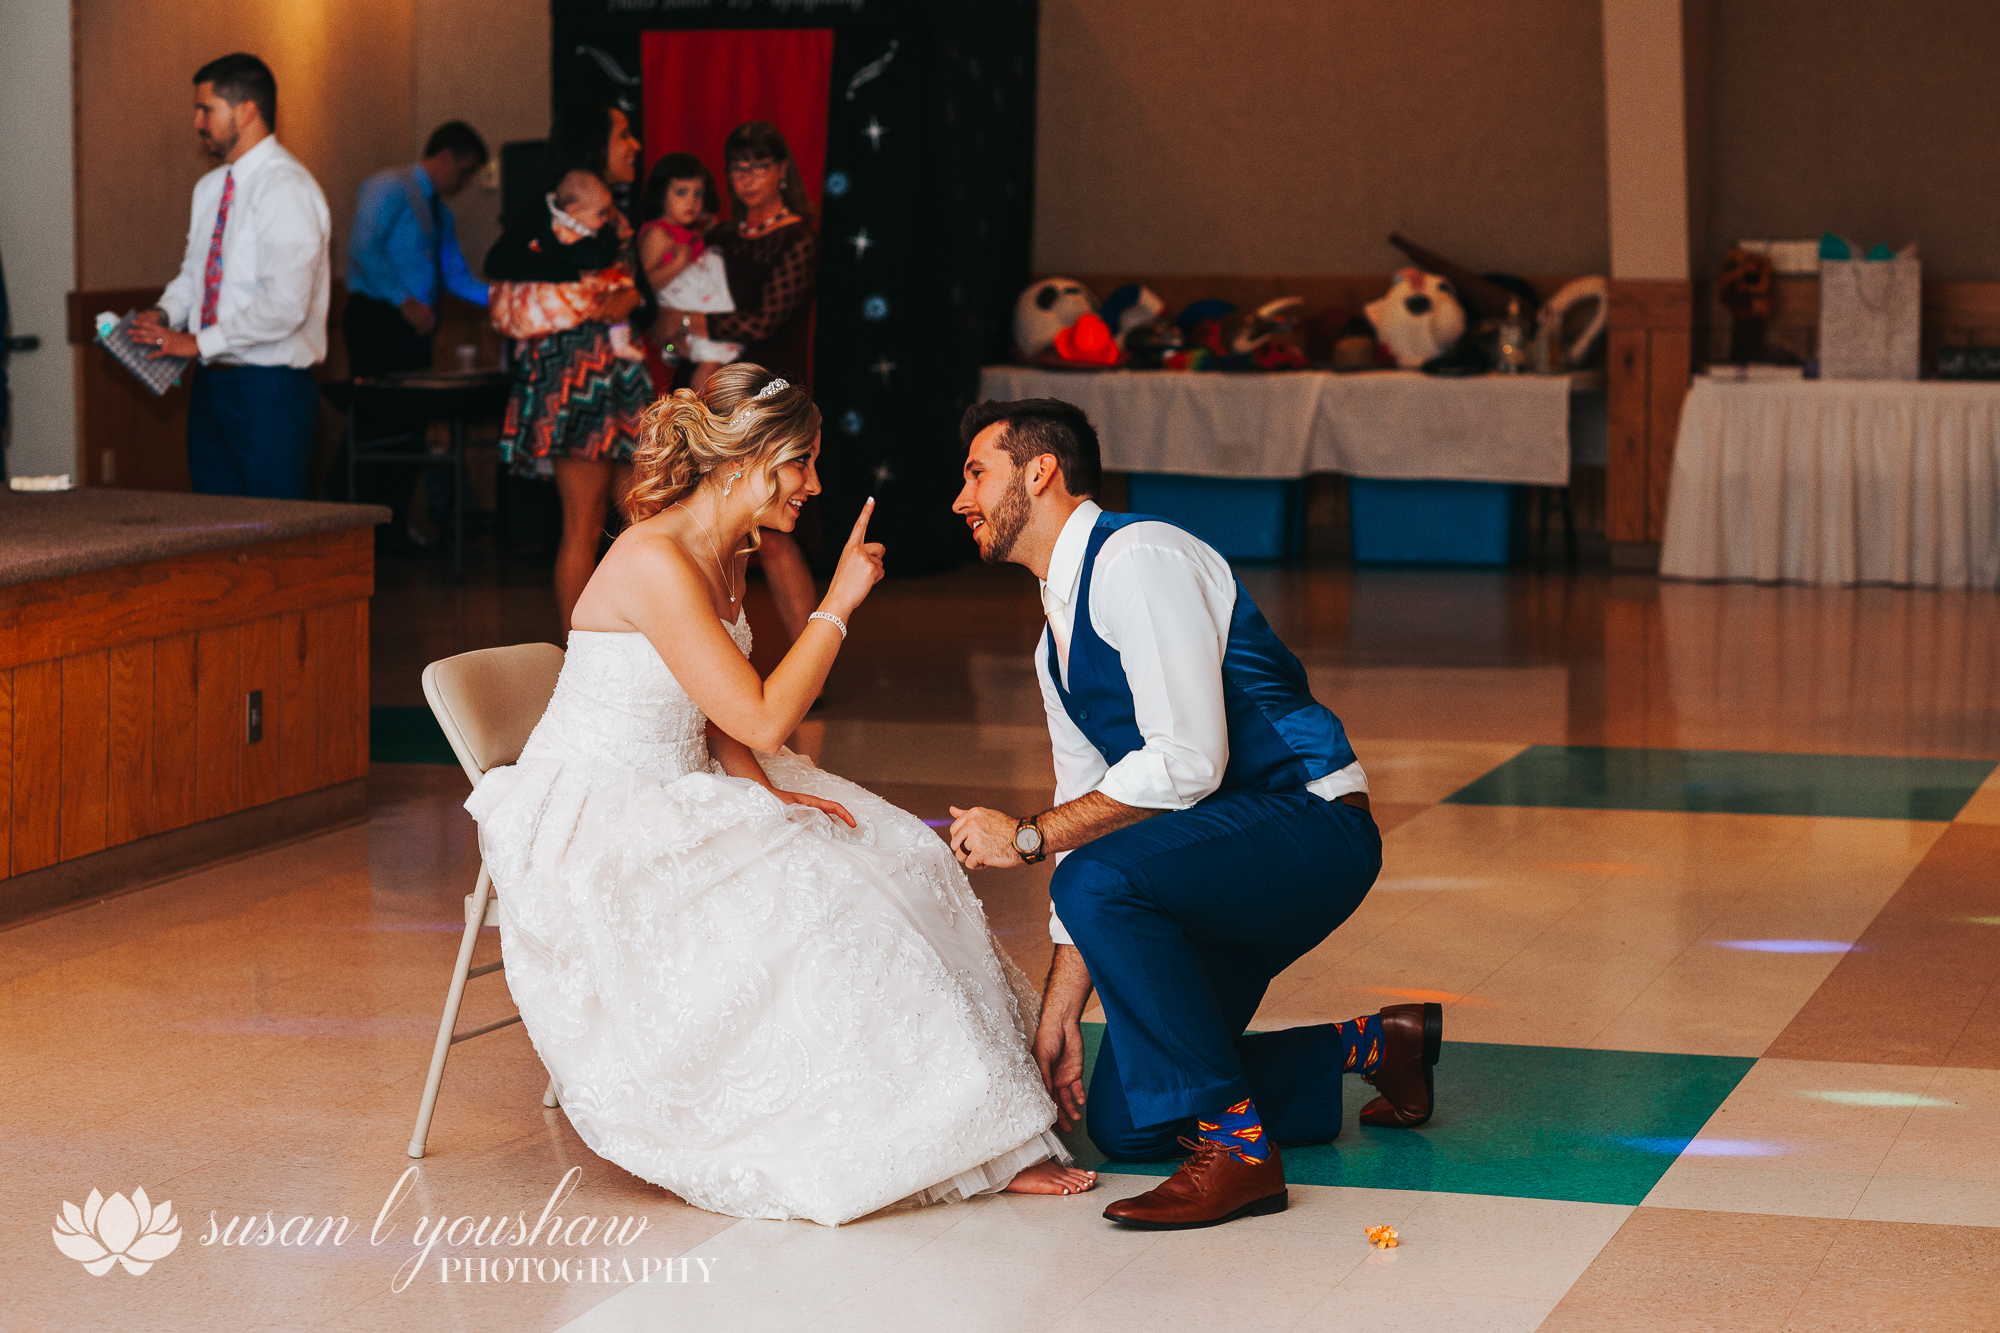 BLOG Kylie and corey Bennet 10-13-2018 SLY Photography LLC-185.jpg